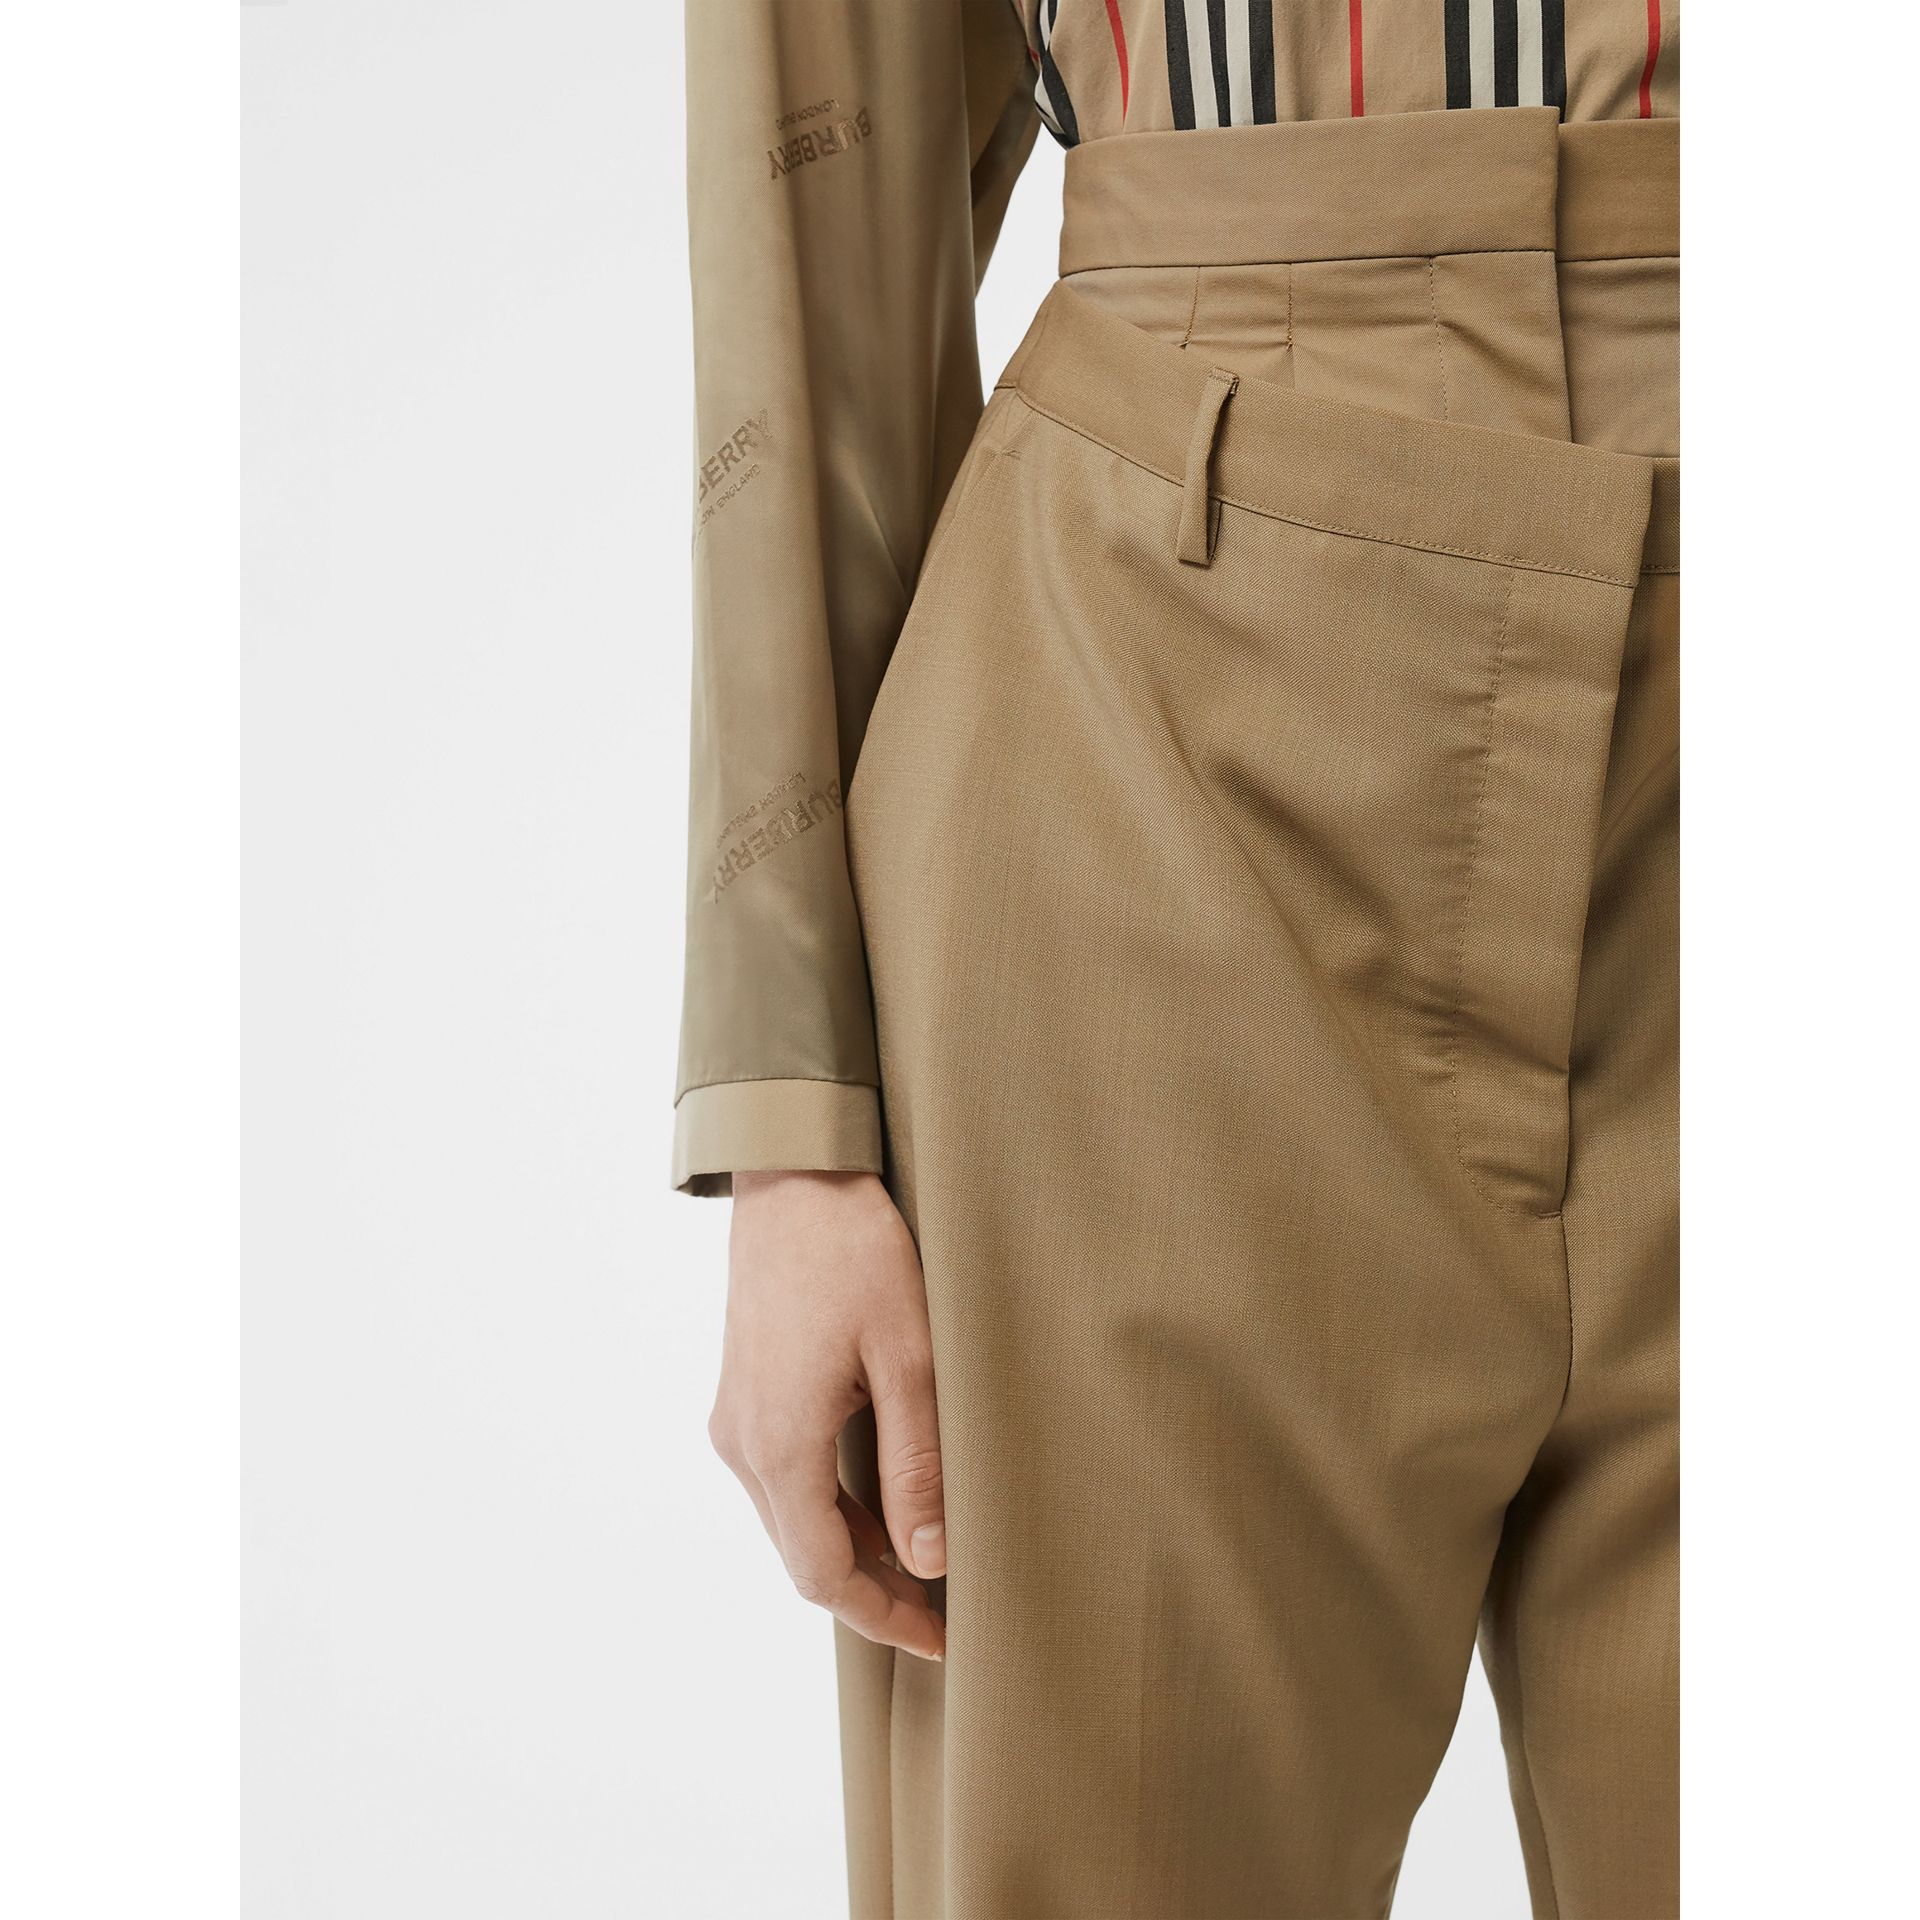 Double-waist Mohair Wool Trousers in Honey - Women | Burberry - gallery image 1